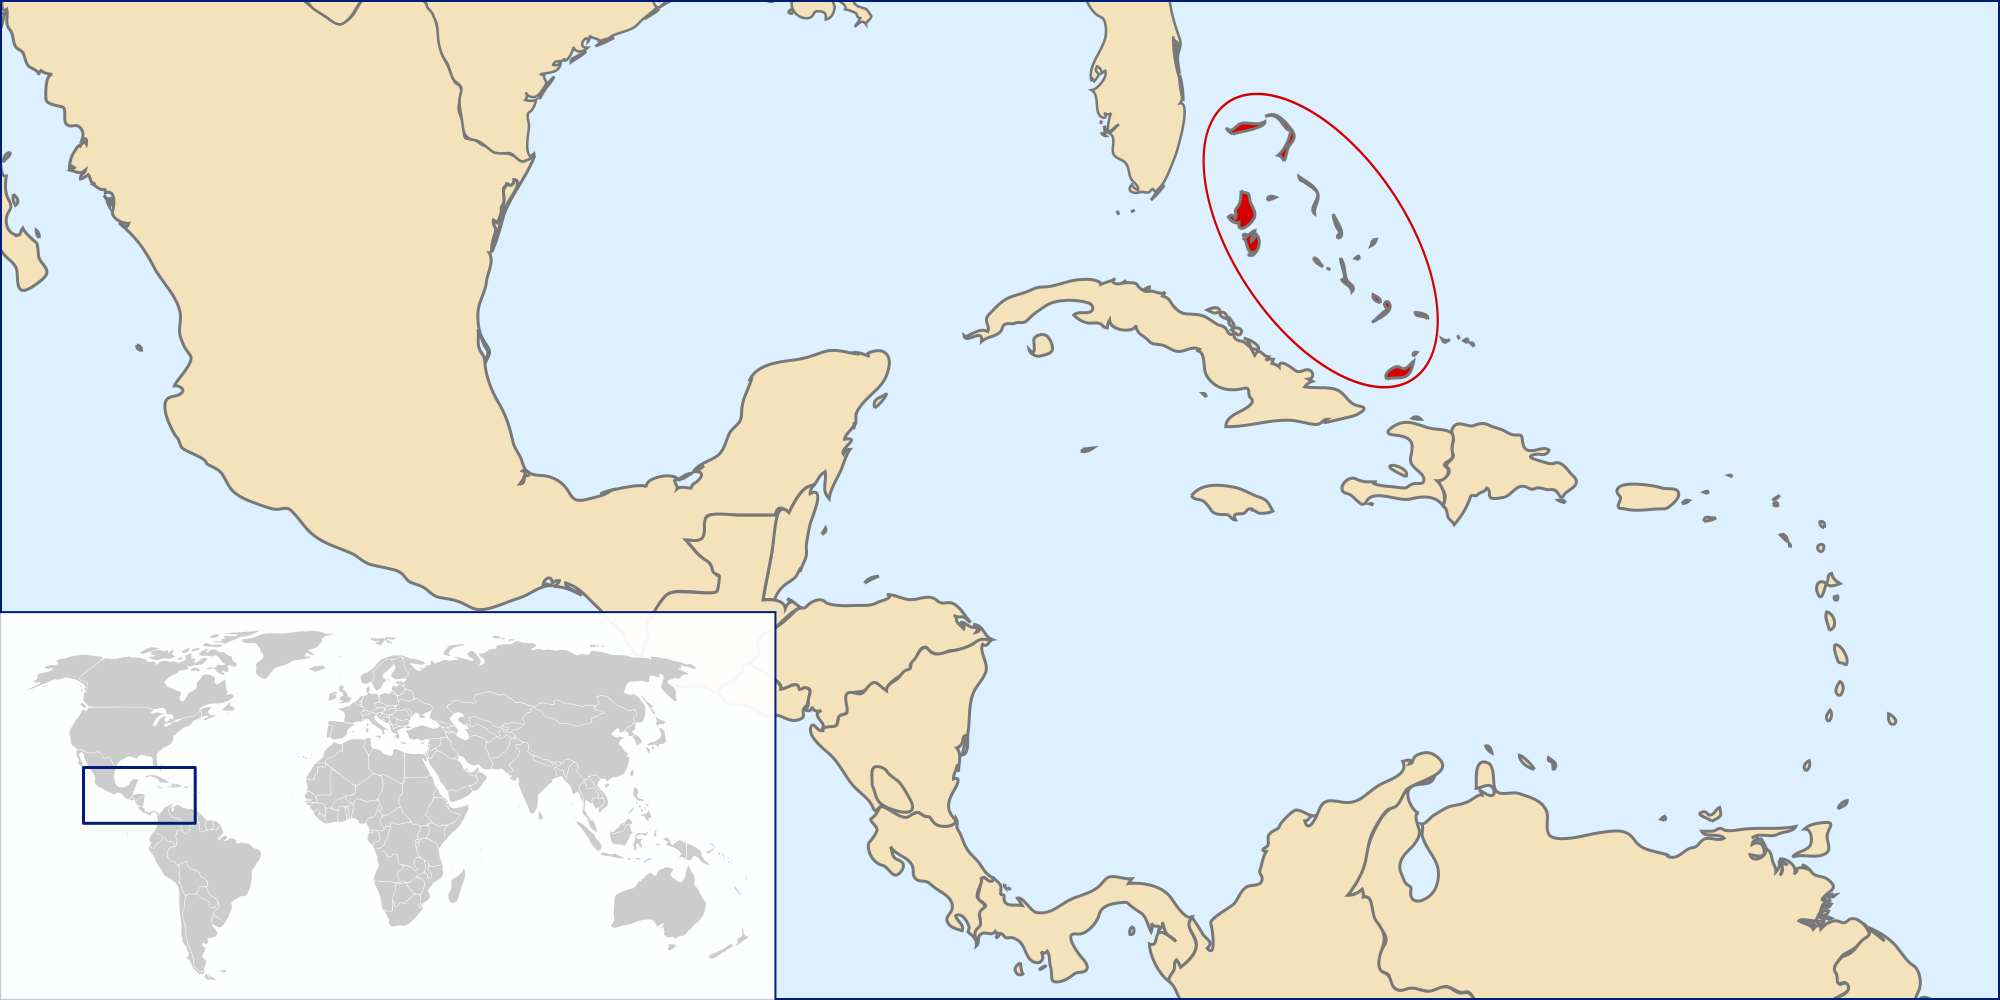 Location of the bahamas in the World Map